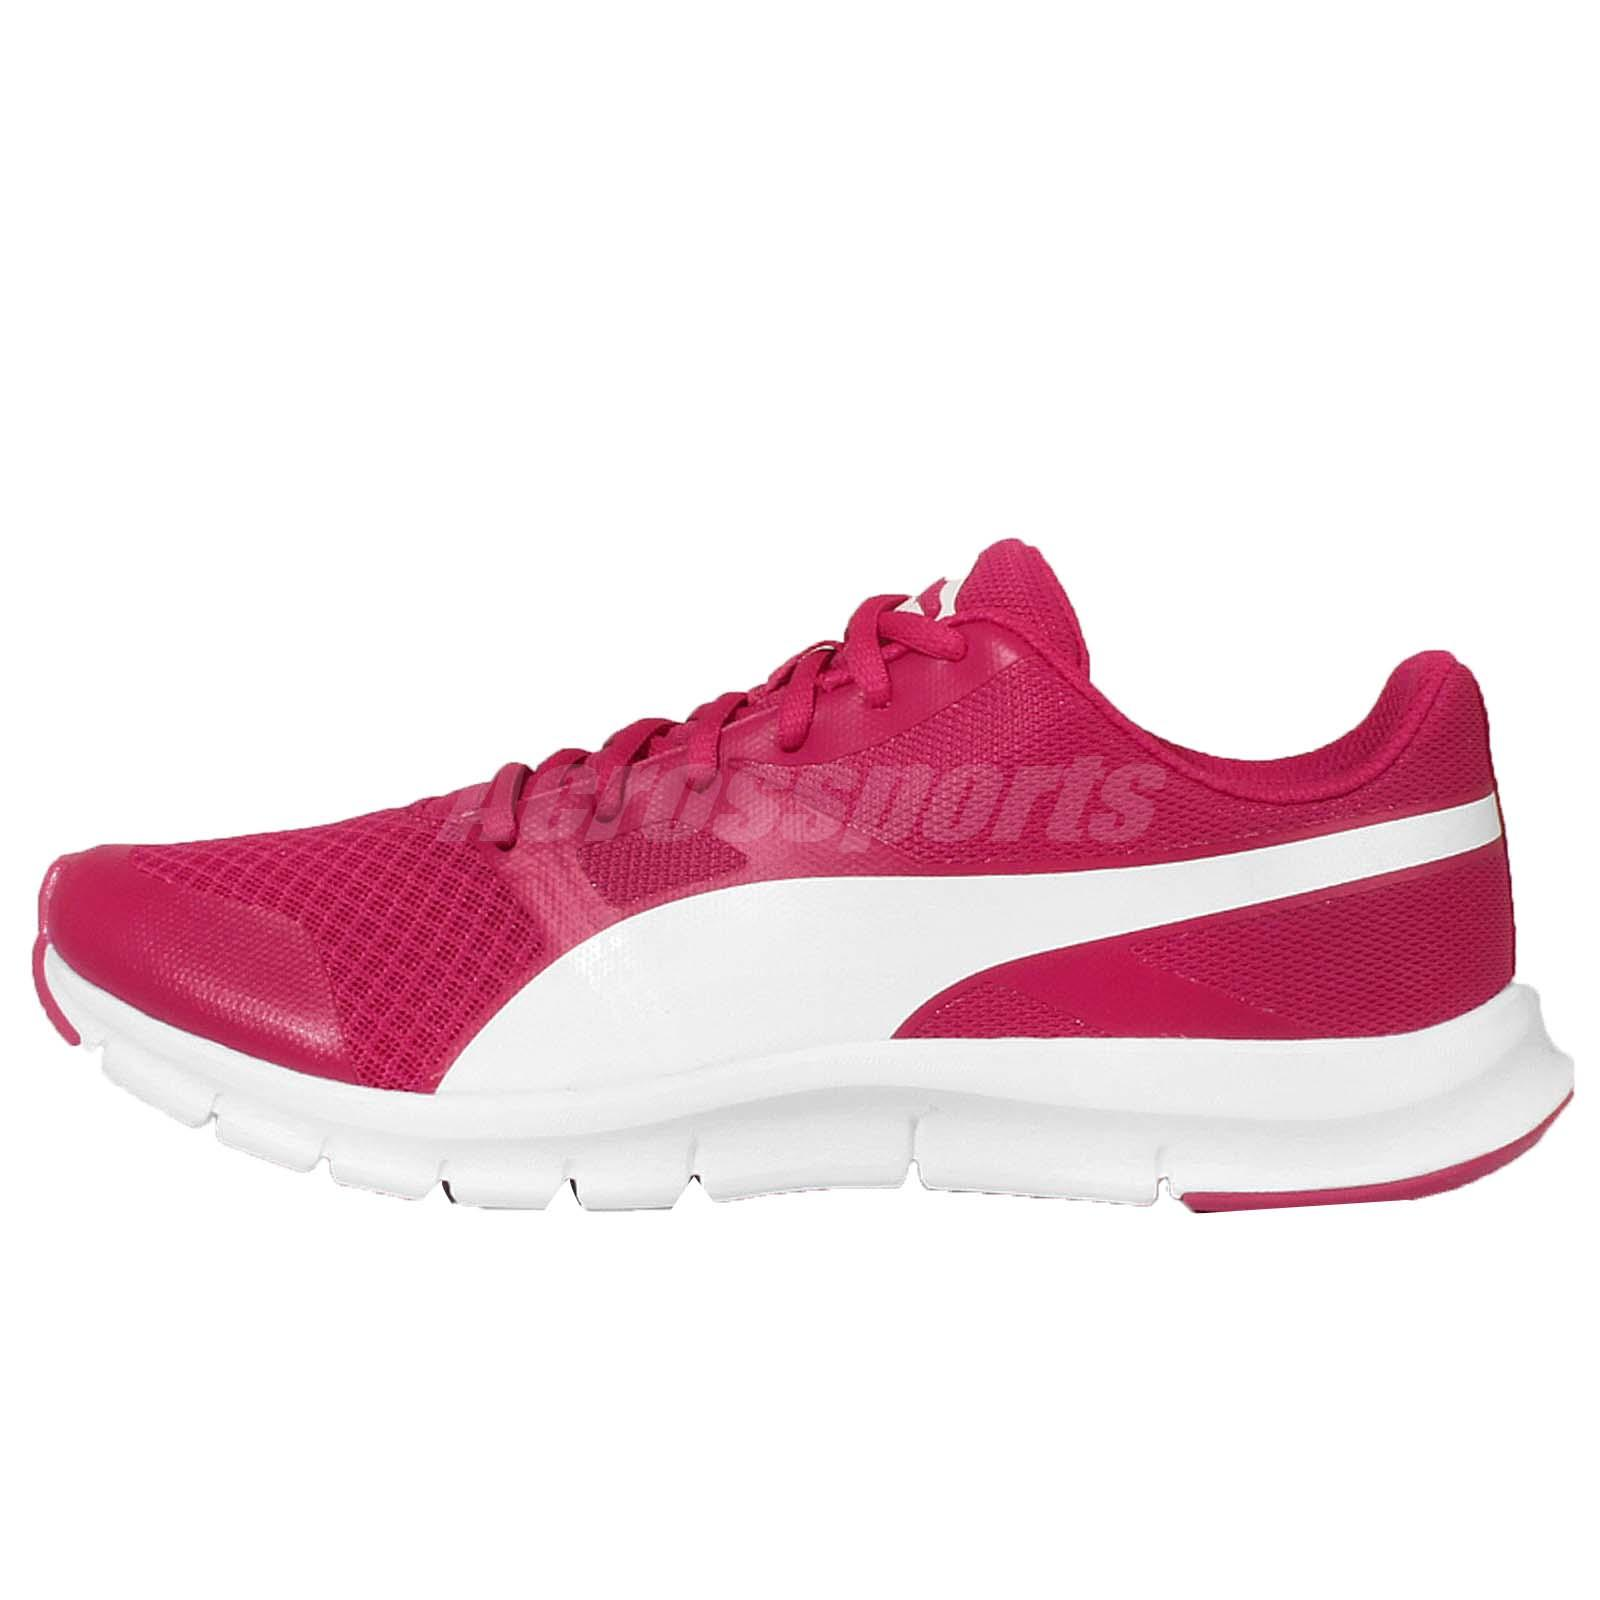 Puma Flexracer Rose Red White Mens Running Shoes Womens Size ...